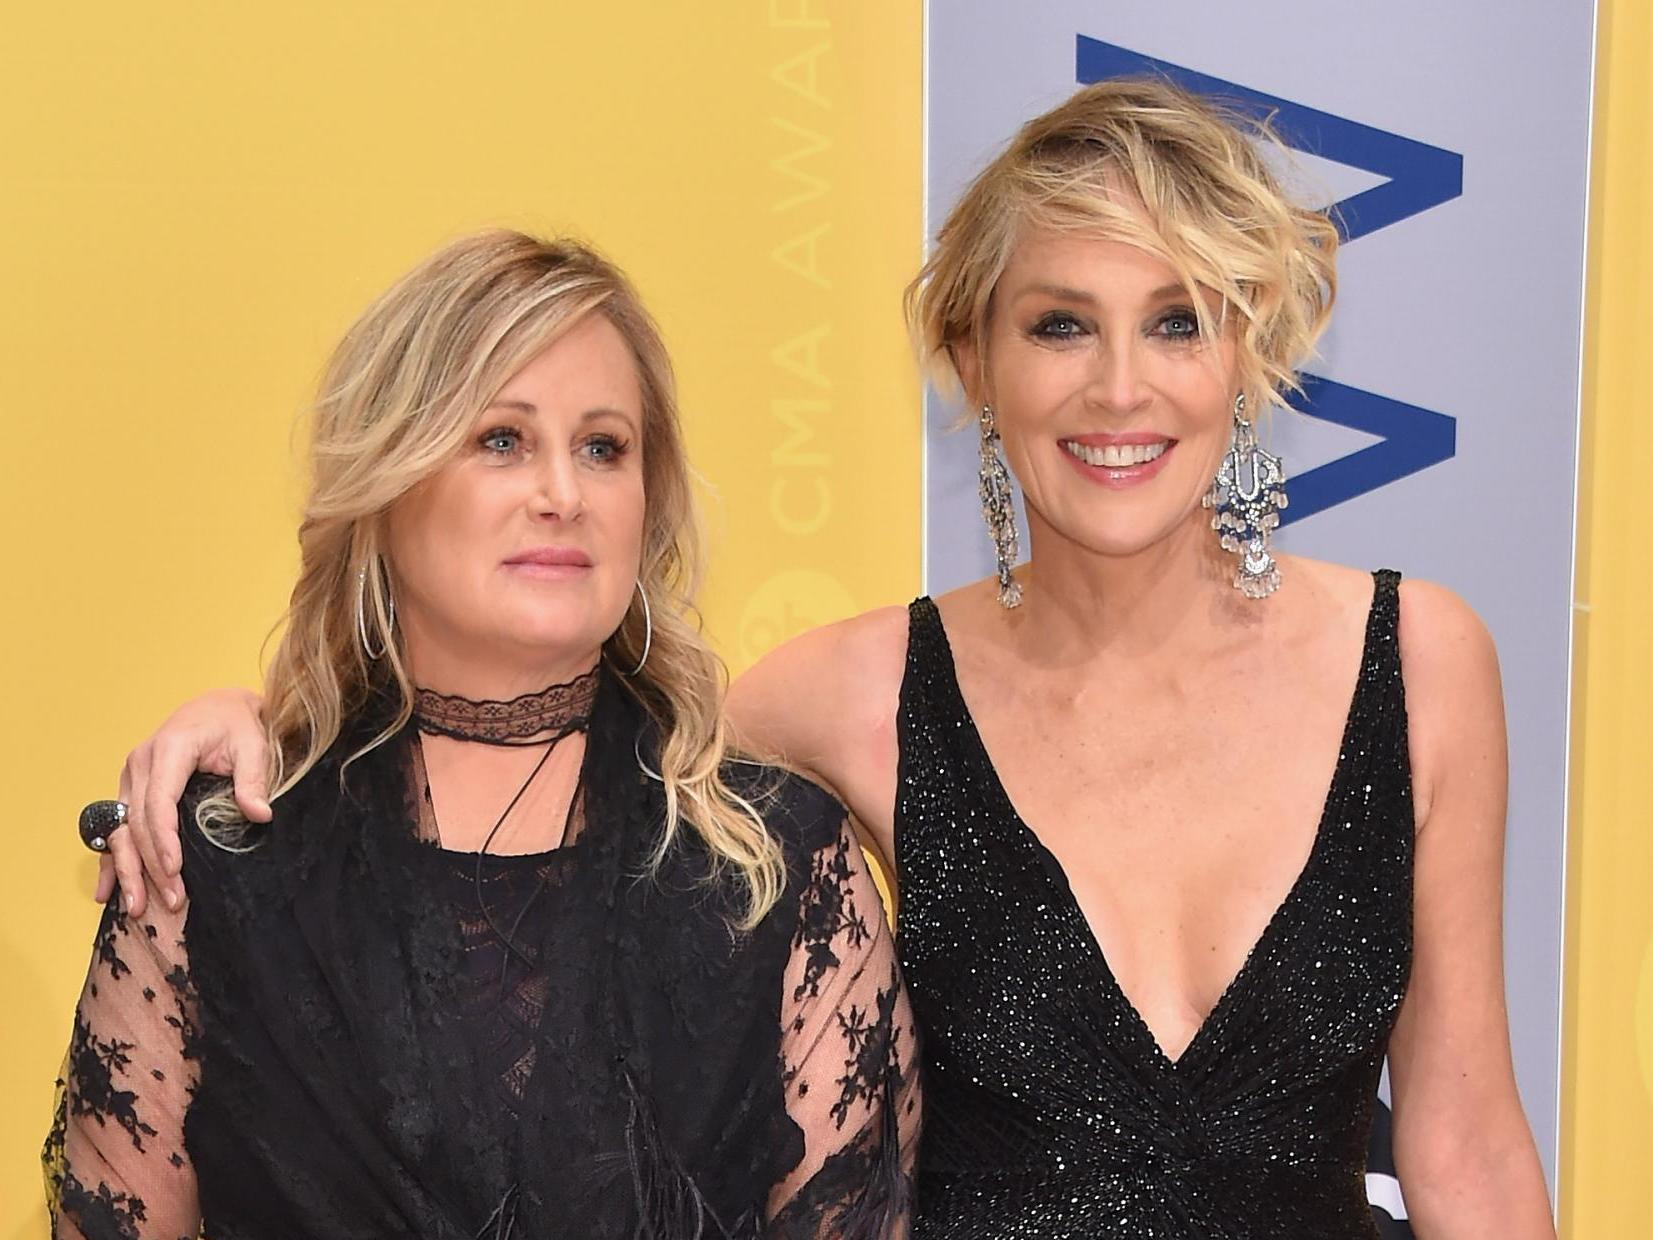 Sharon Stone's sister 'fighting for life' in hospital with coronavirus: 'One of you non-mask wearers did this' thumbnail